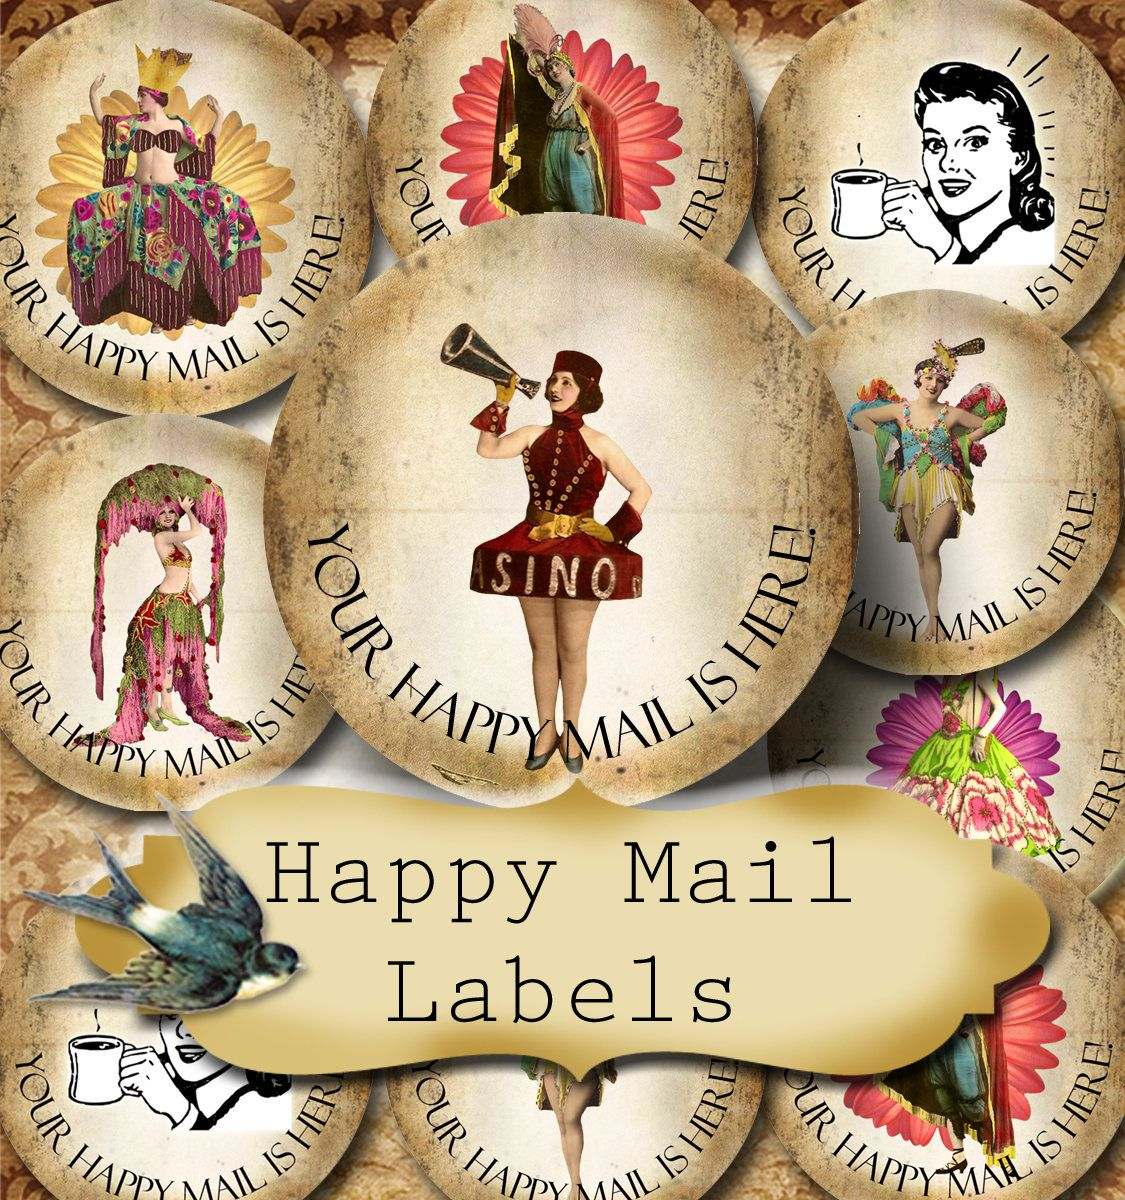 Happy mail •60 custom 1 5 x 1 5 round stickers•round labels•tags•